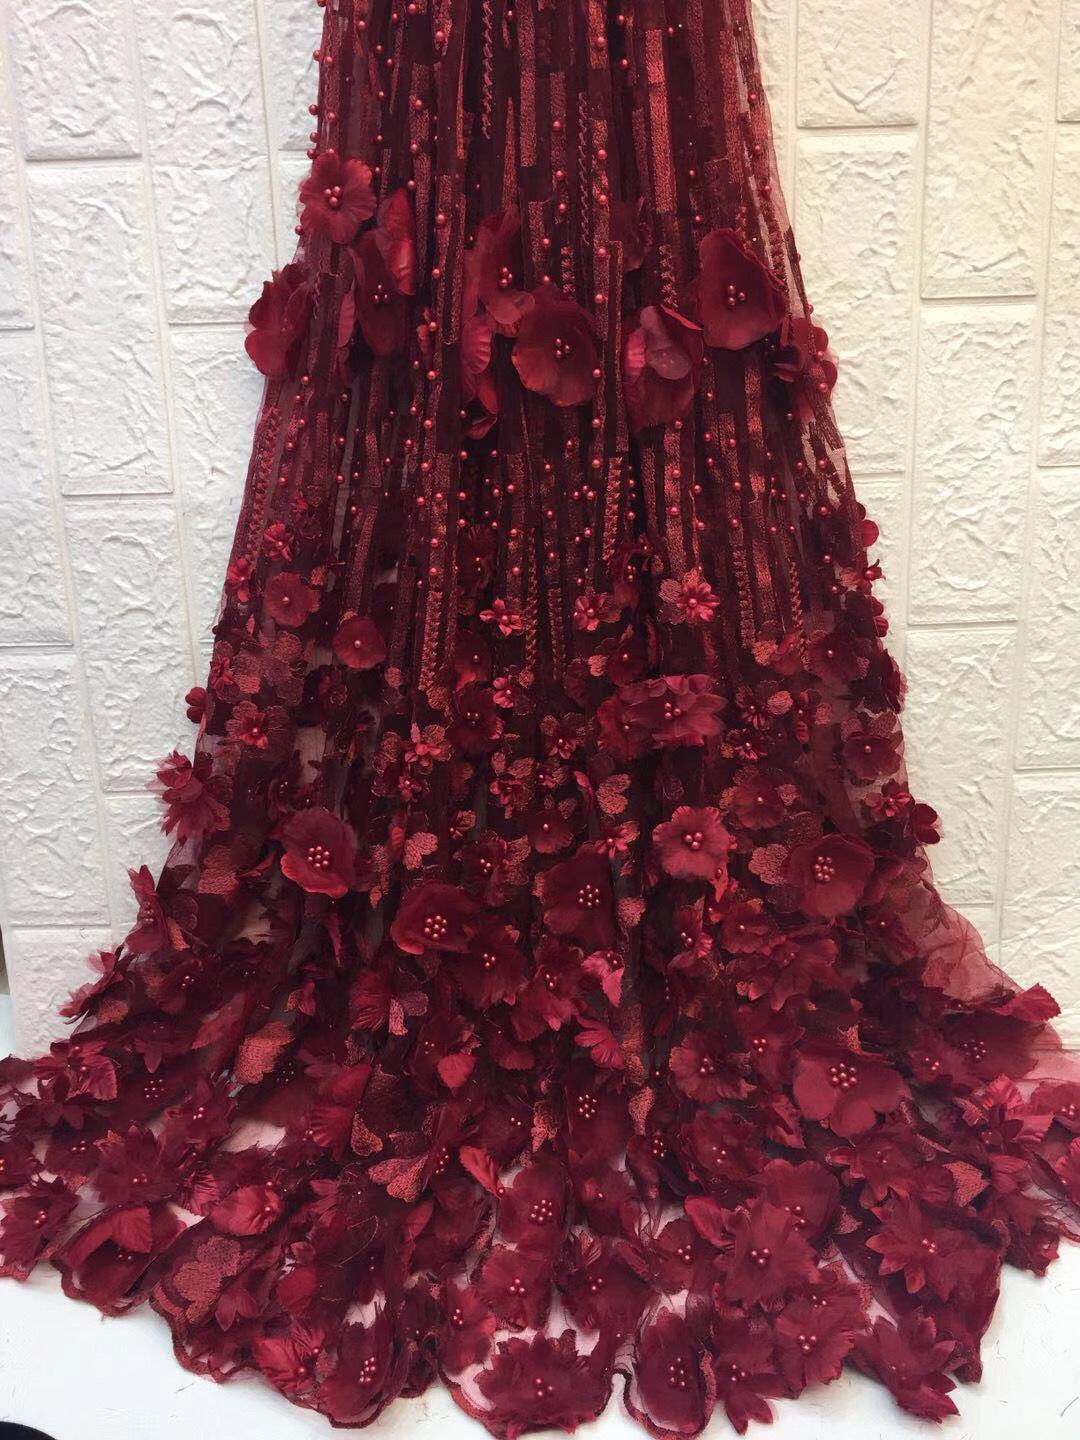 Wine Bridal Lace Fabric High Qualith Handmade Beaded 3d African Lace Material Embroidery Lace Trim For